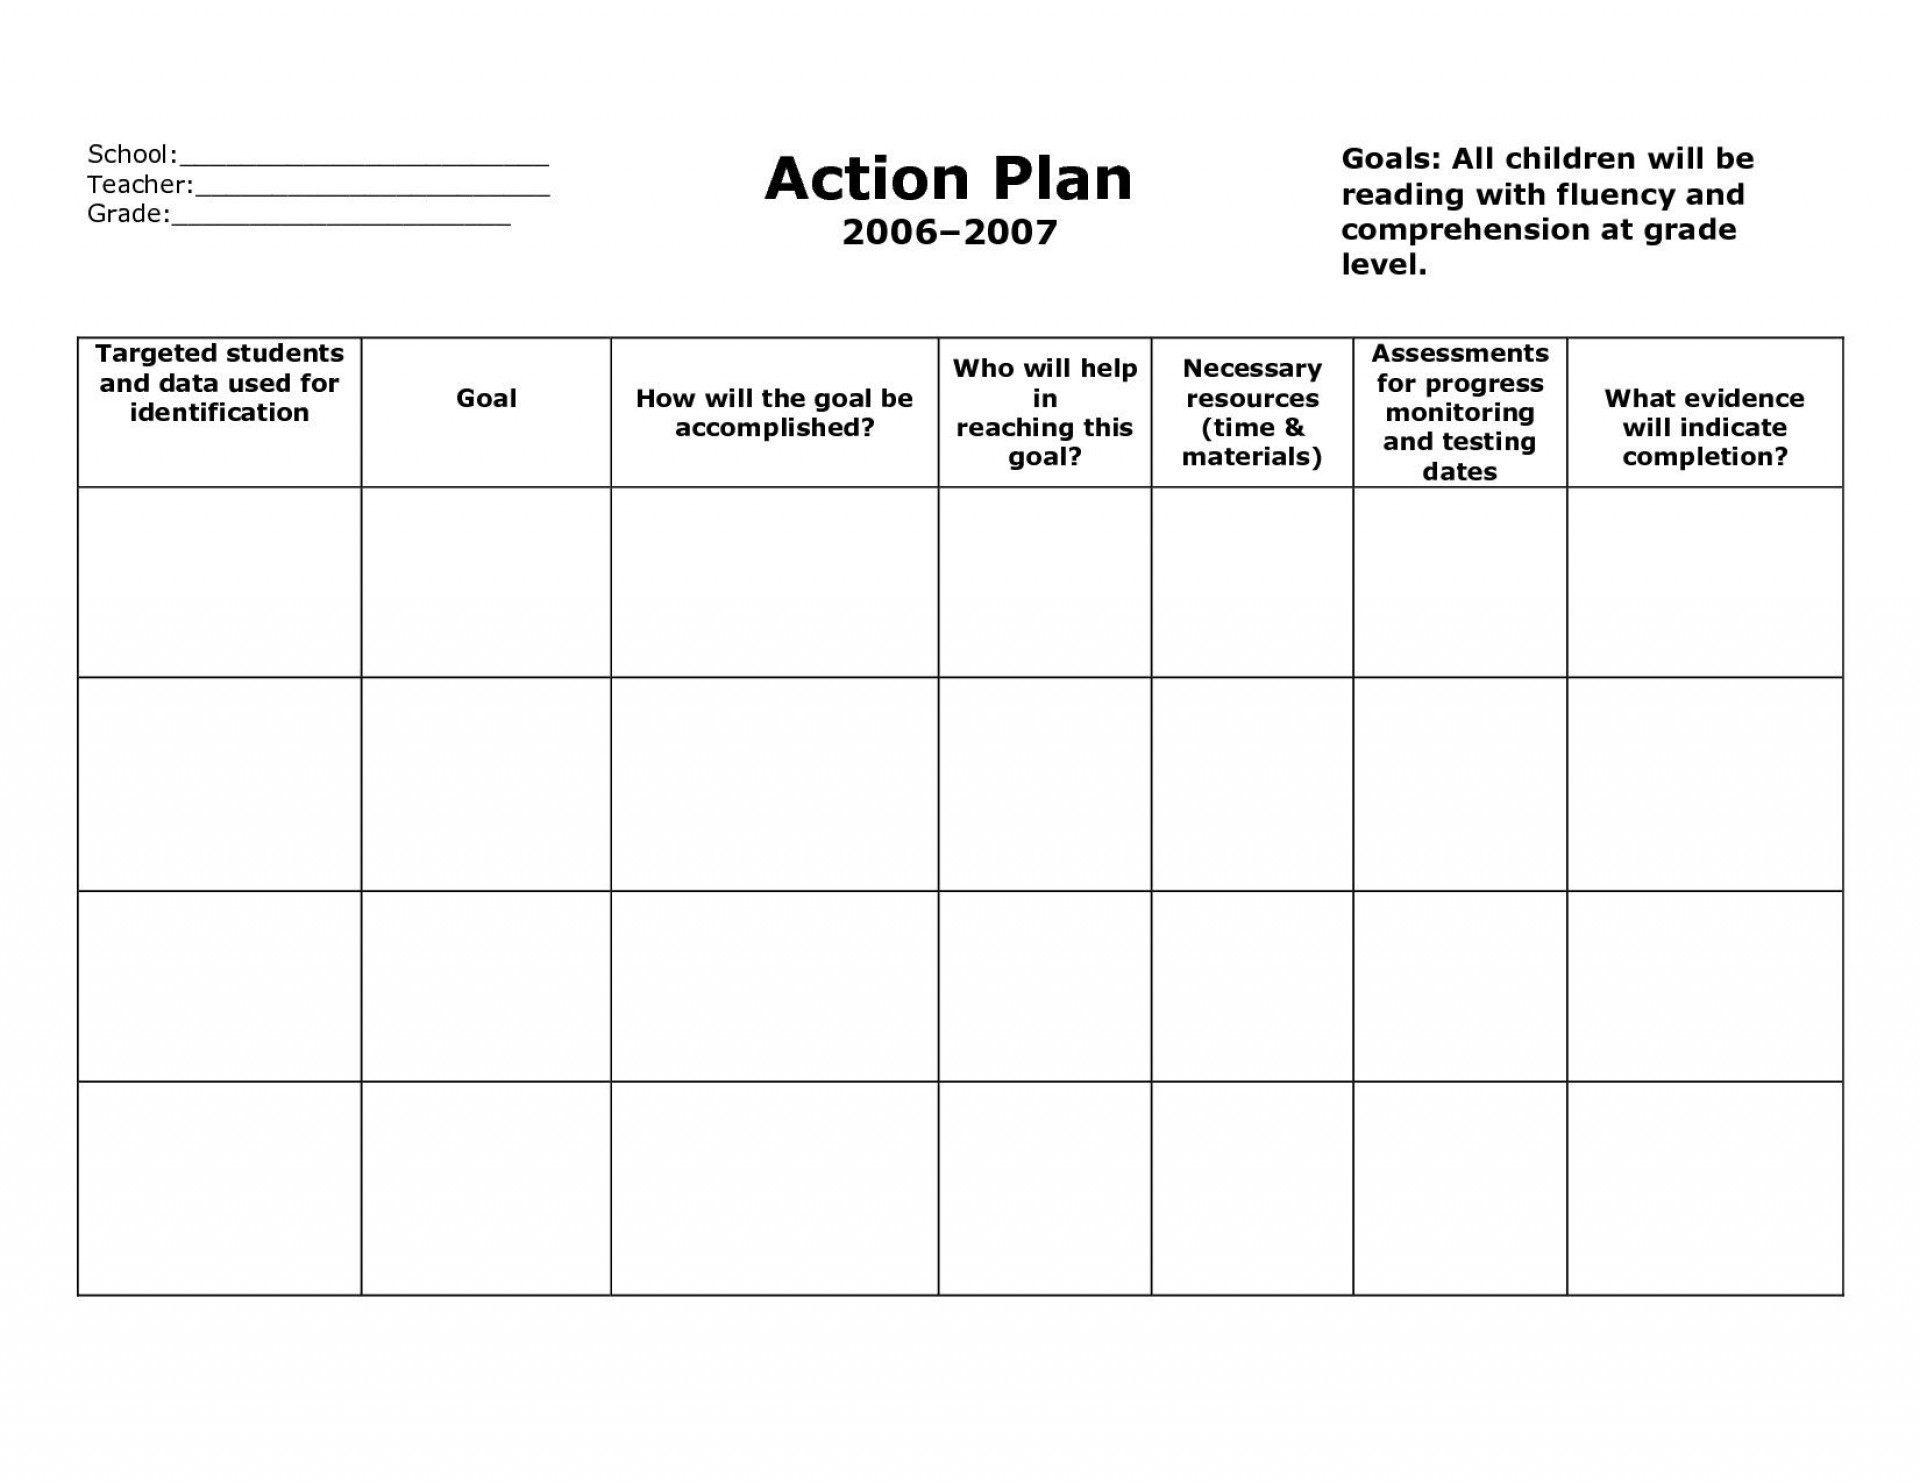 007 Wondrou Smart Action Plan Template High Def  Download Nh Example Free1920